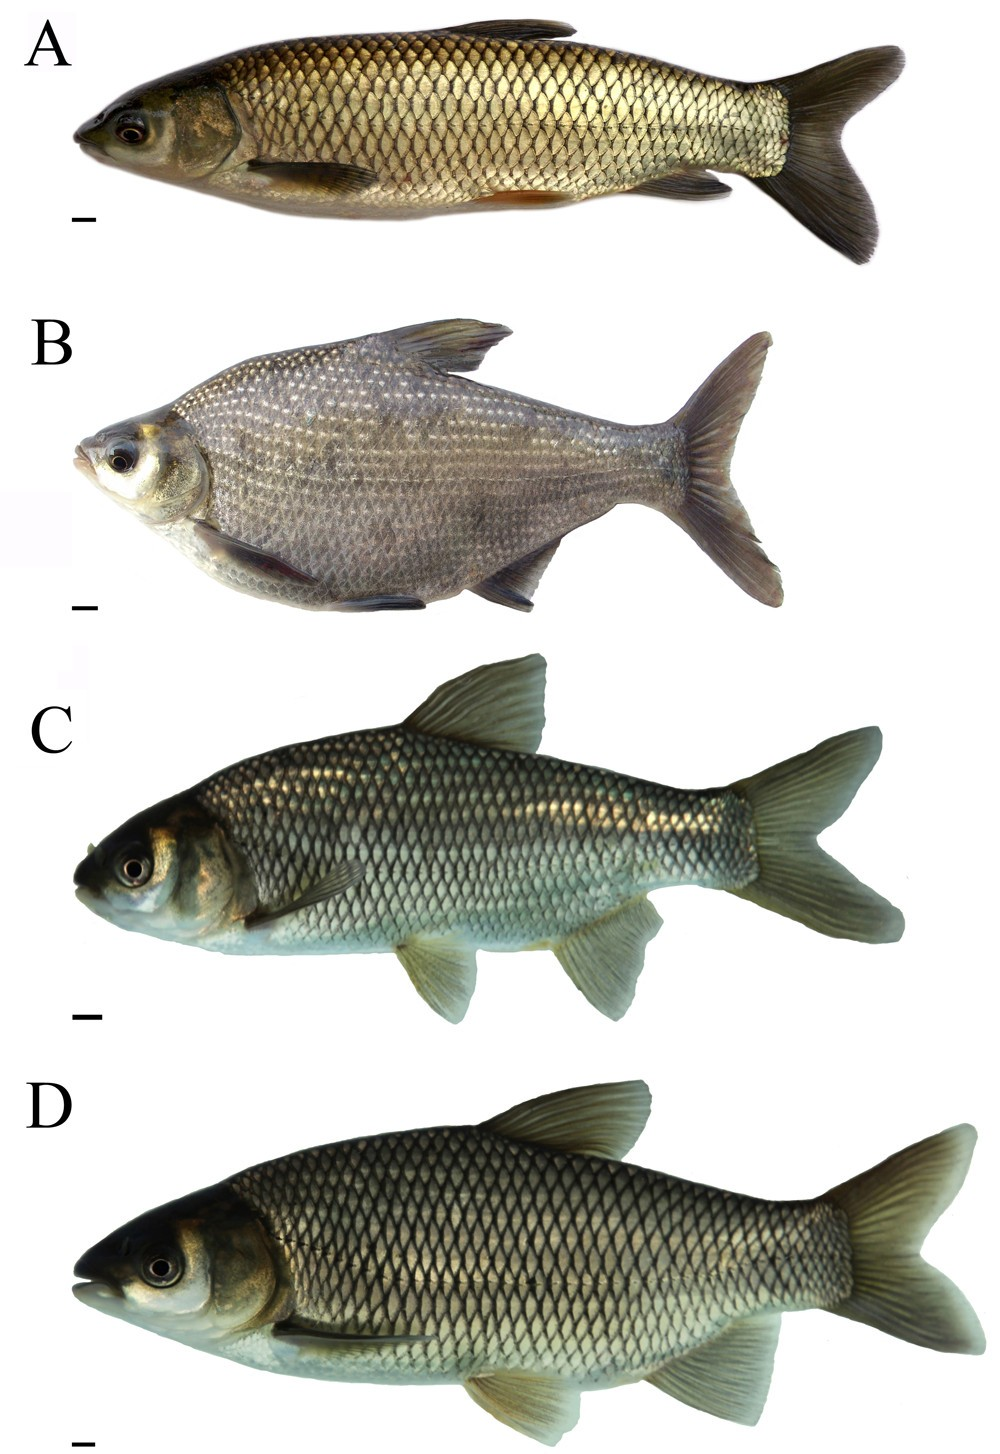 Fried crucian carp. Caloric content and use of fish after processing